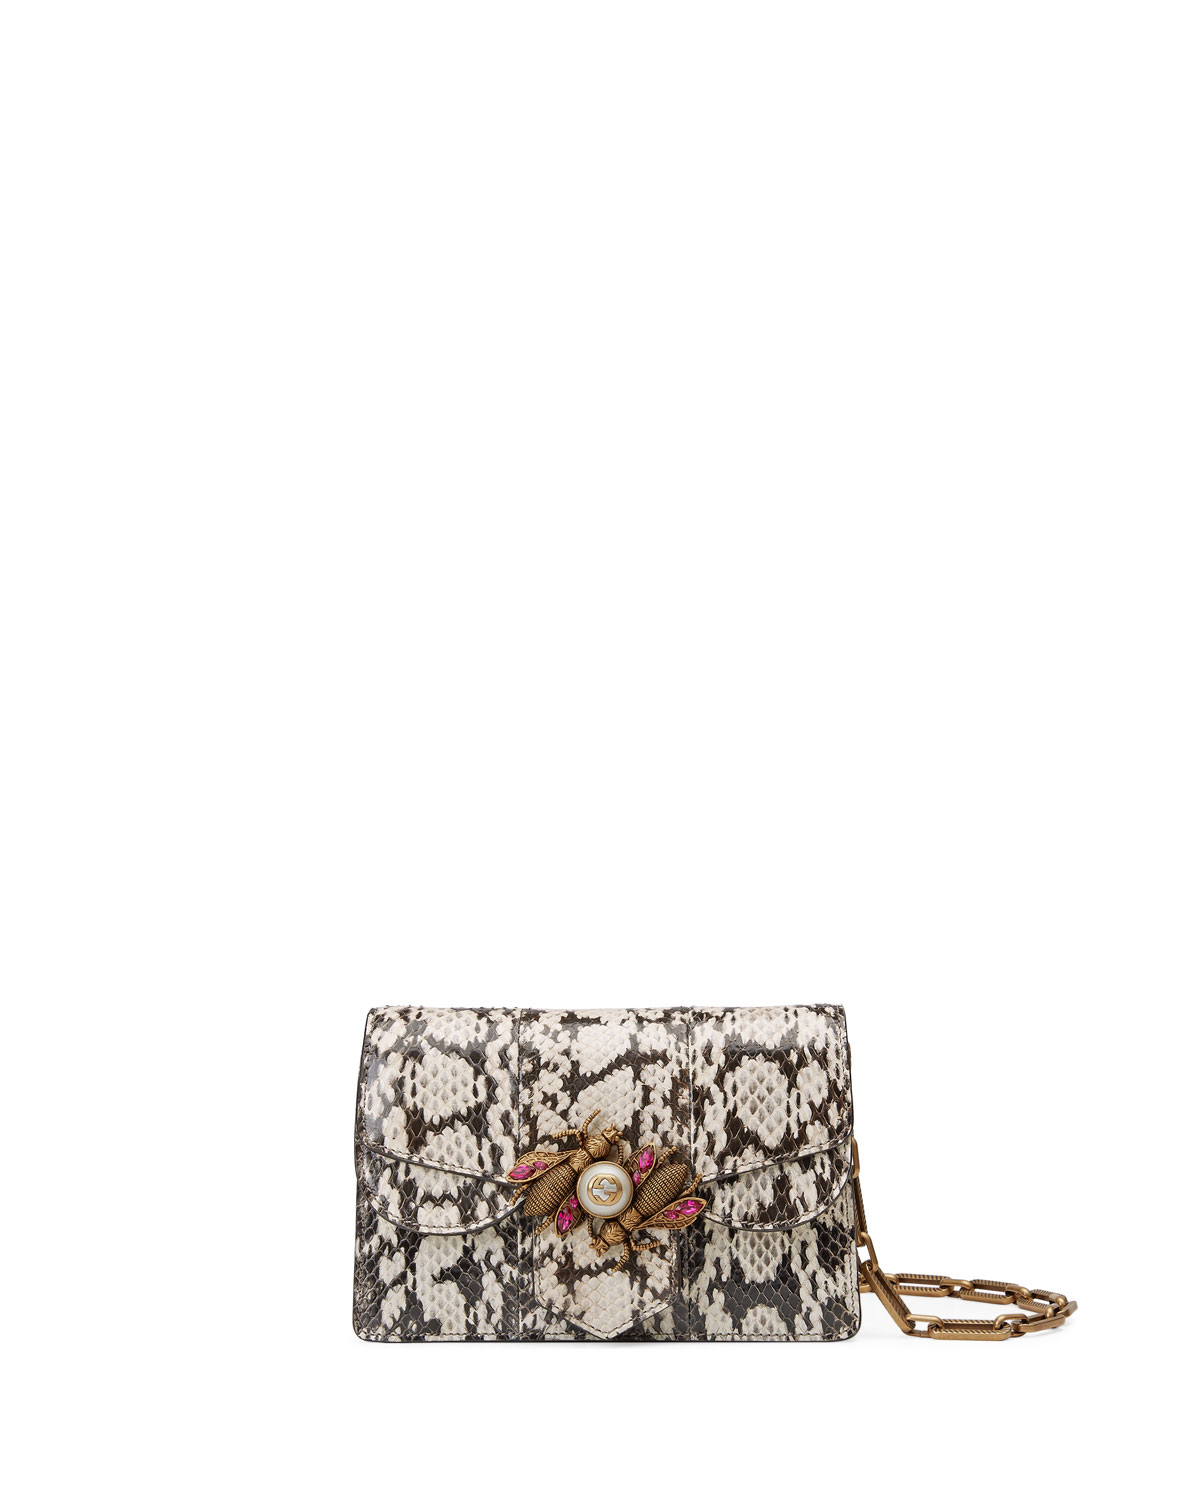 dda834feb9e Quick Look. Gucci · Broadway Small Snakeskin Shoulder Bag. Available in  Snake